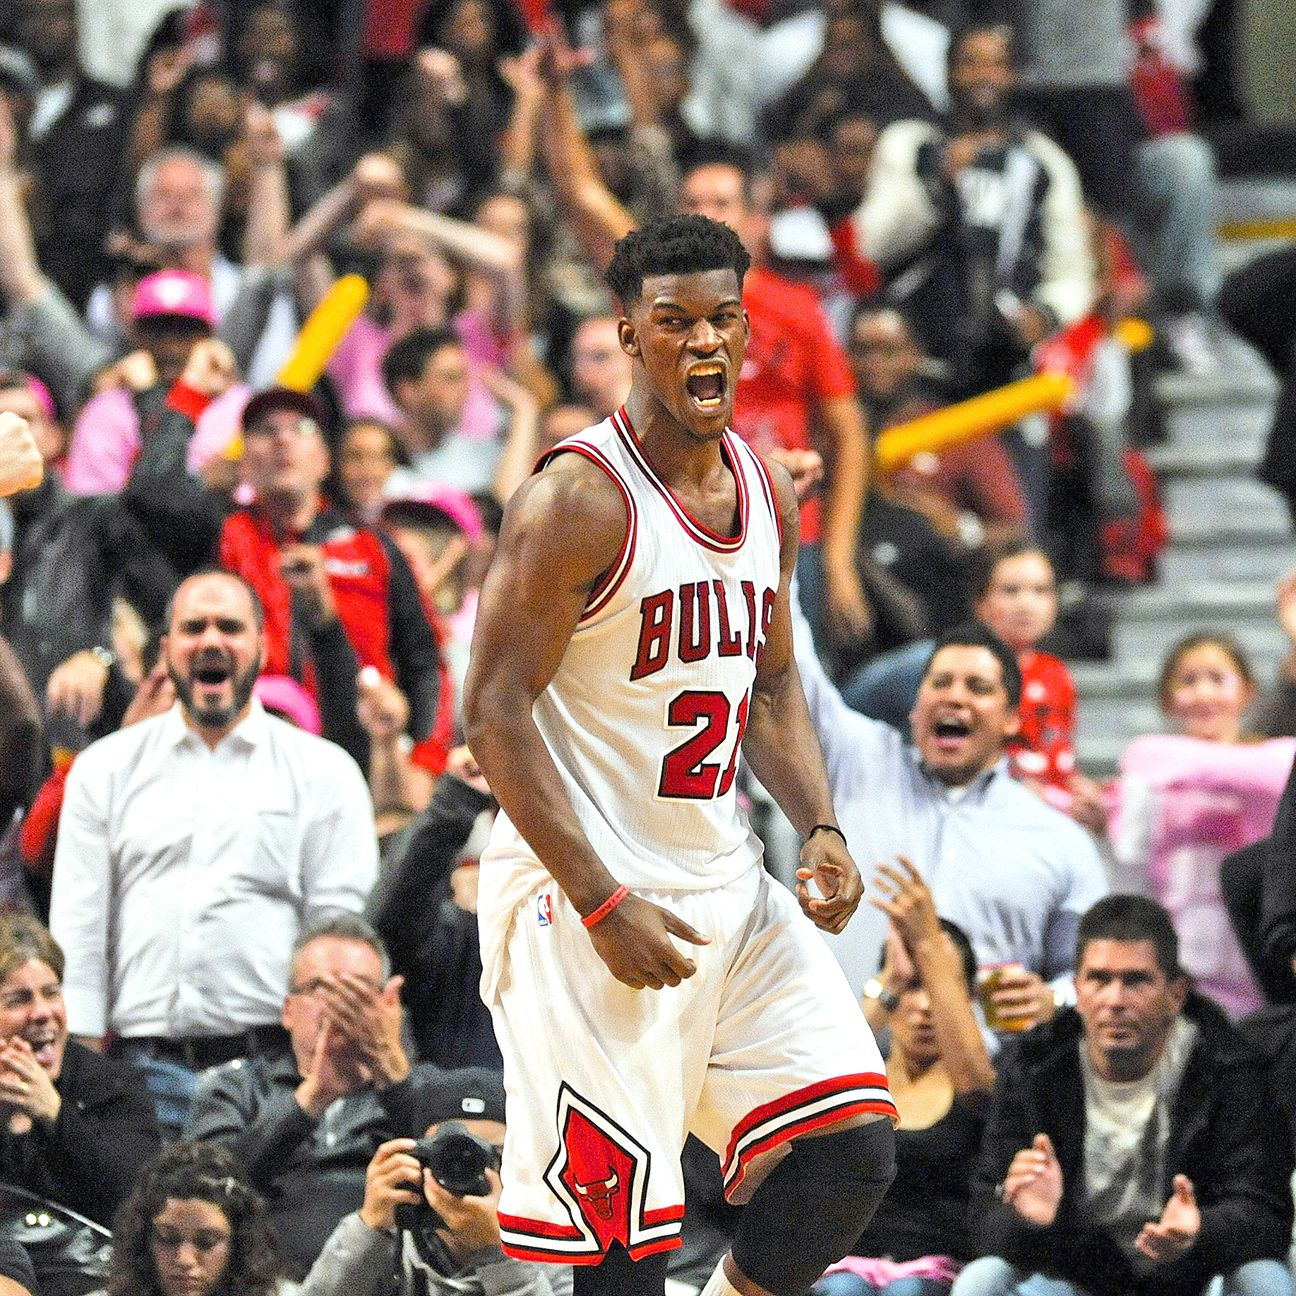 Jimmy Butler's unusual path to becoming a star